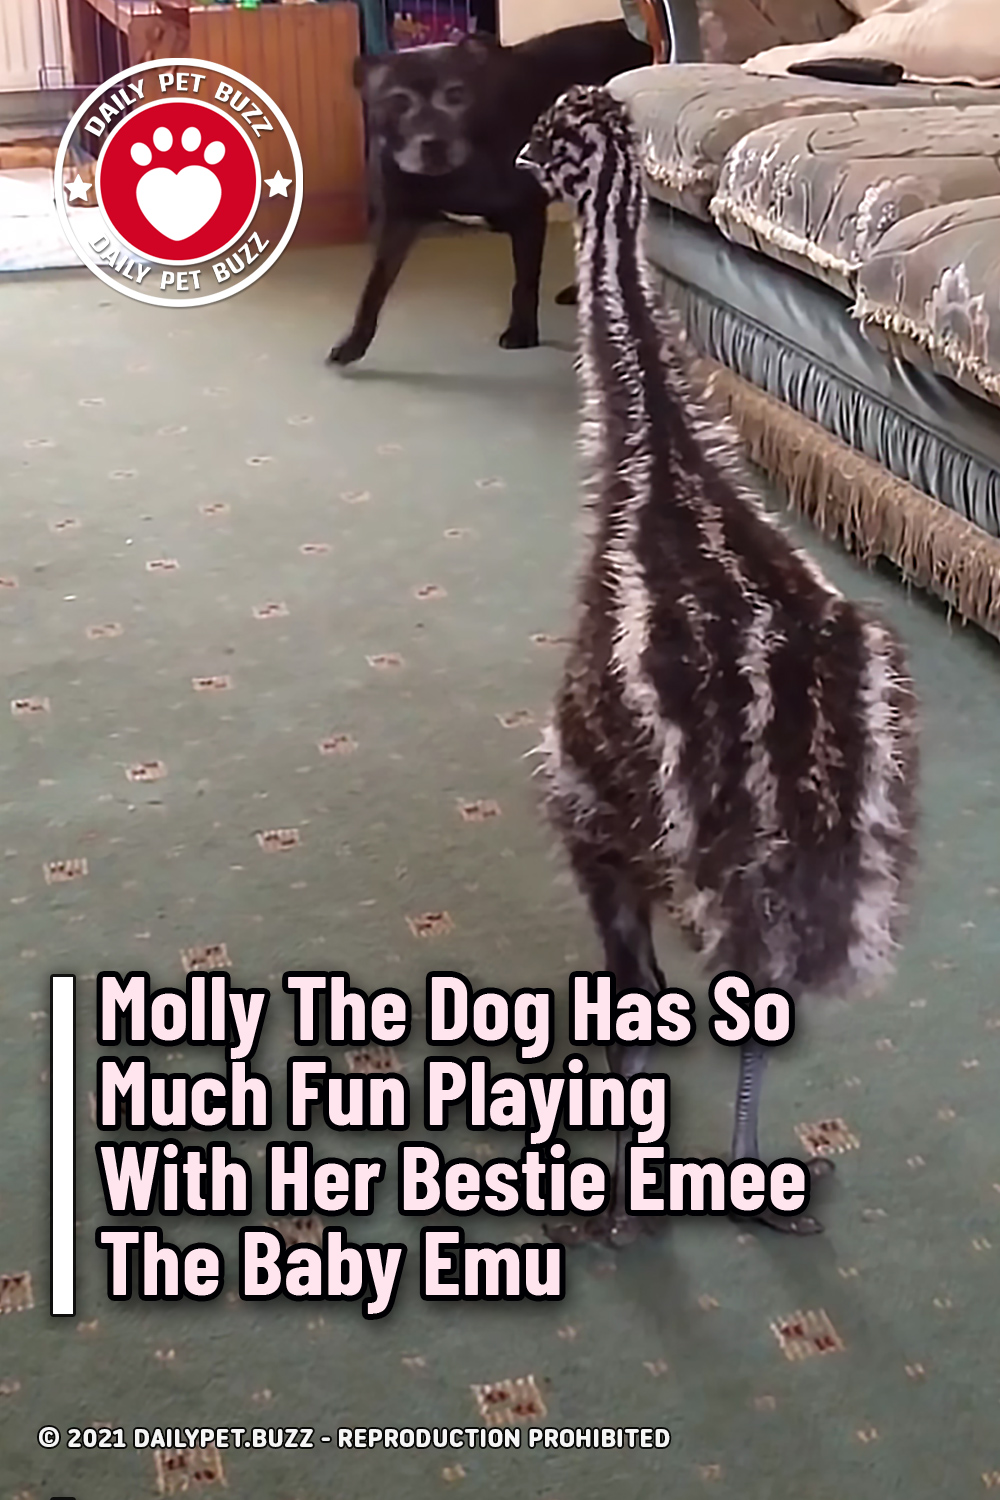 Molly The Dog Has So Much Fun Playing With Her Bestie Emee The Baby Emu